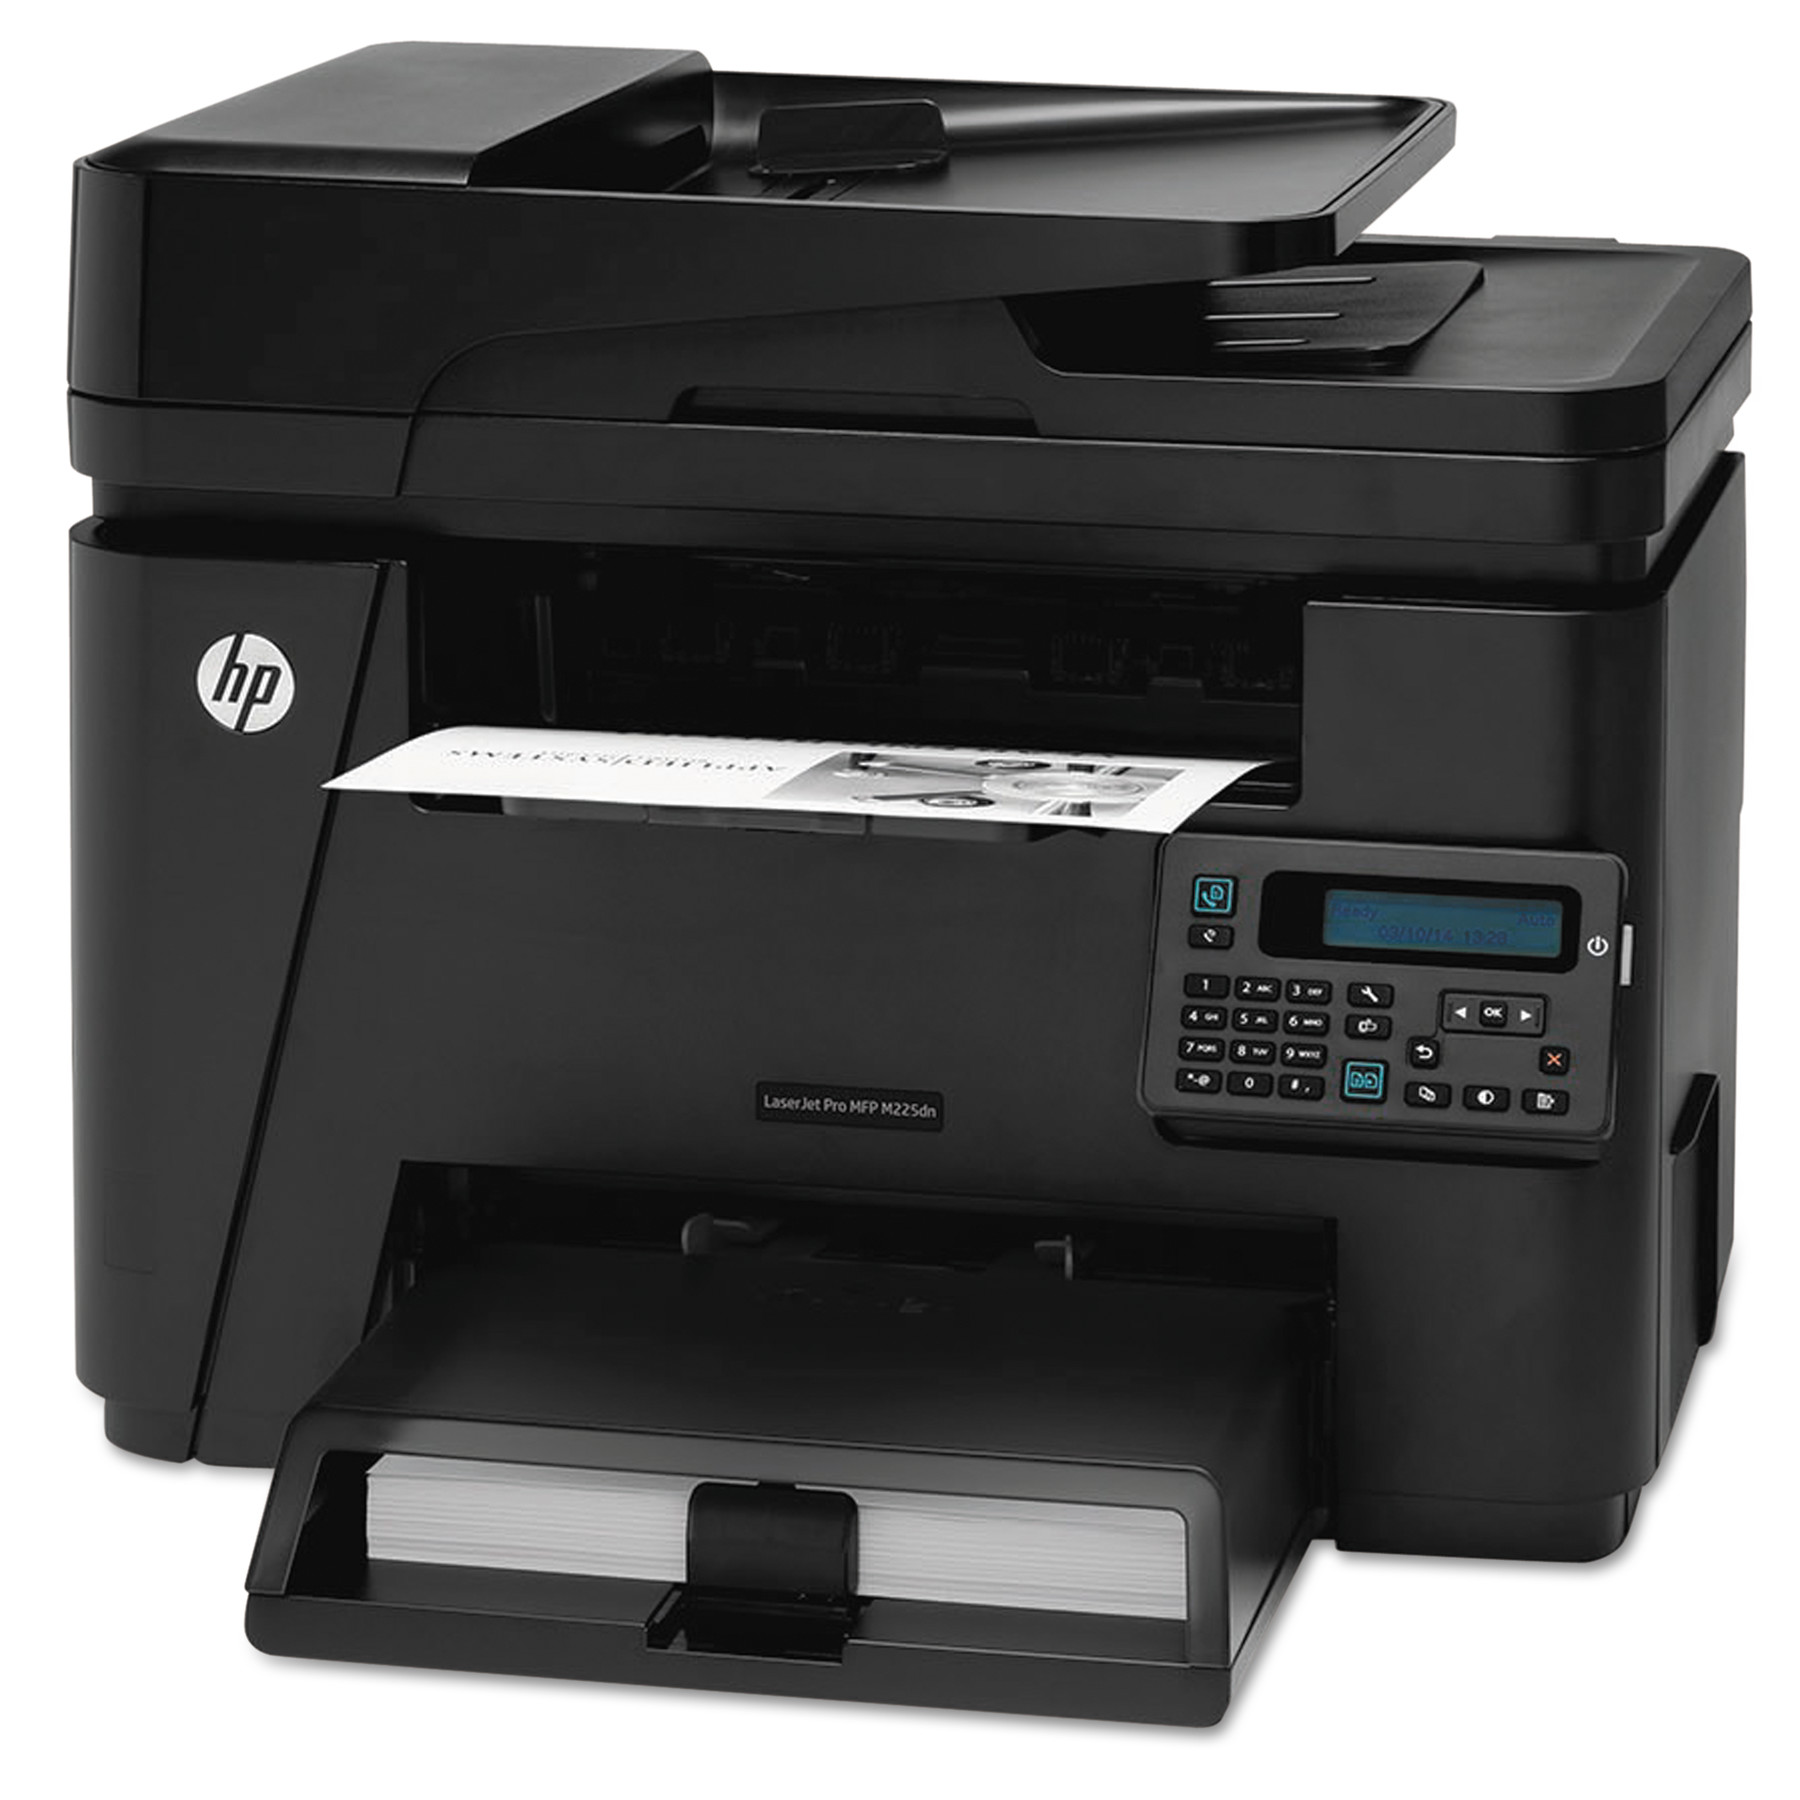 HP LaserJet Pro MFP M225DN Multifunction Laser Printer, Copy/Fax/Print/